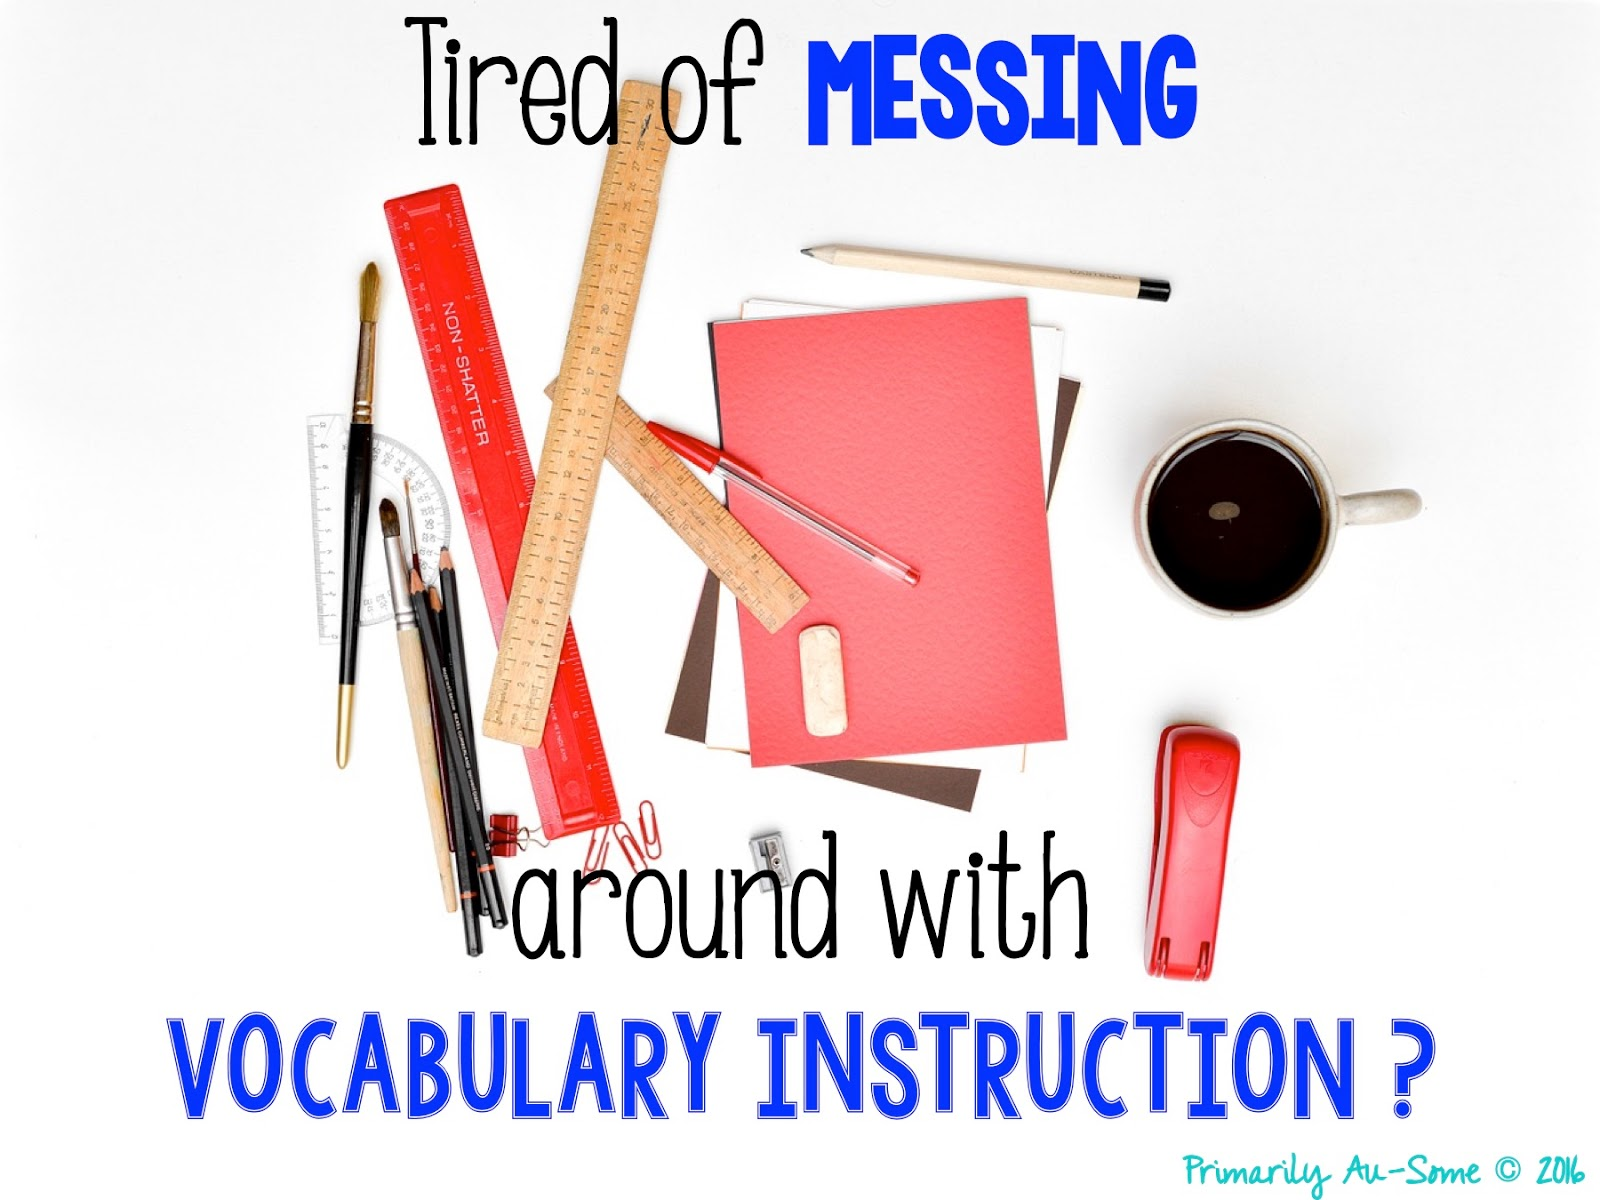 Vocabulary Instruction For Students With Disabilites